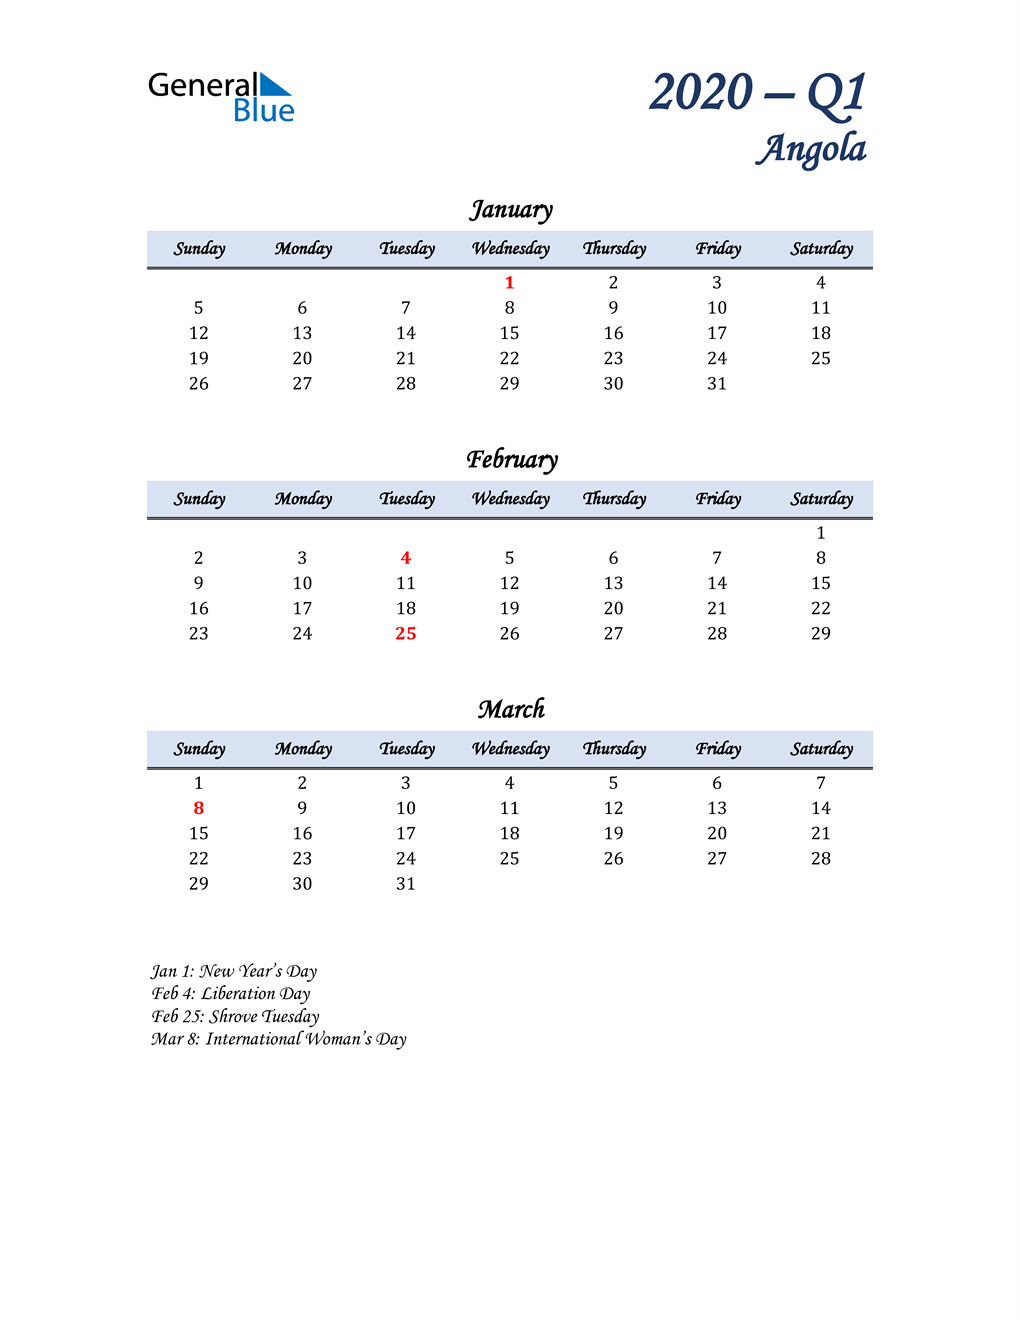 January, February, and March Calendar for Angola